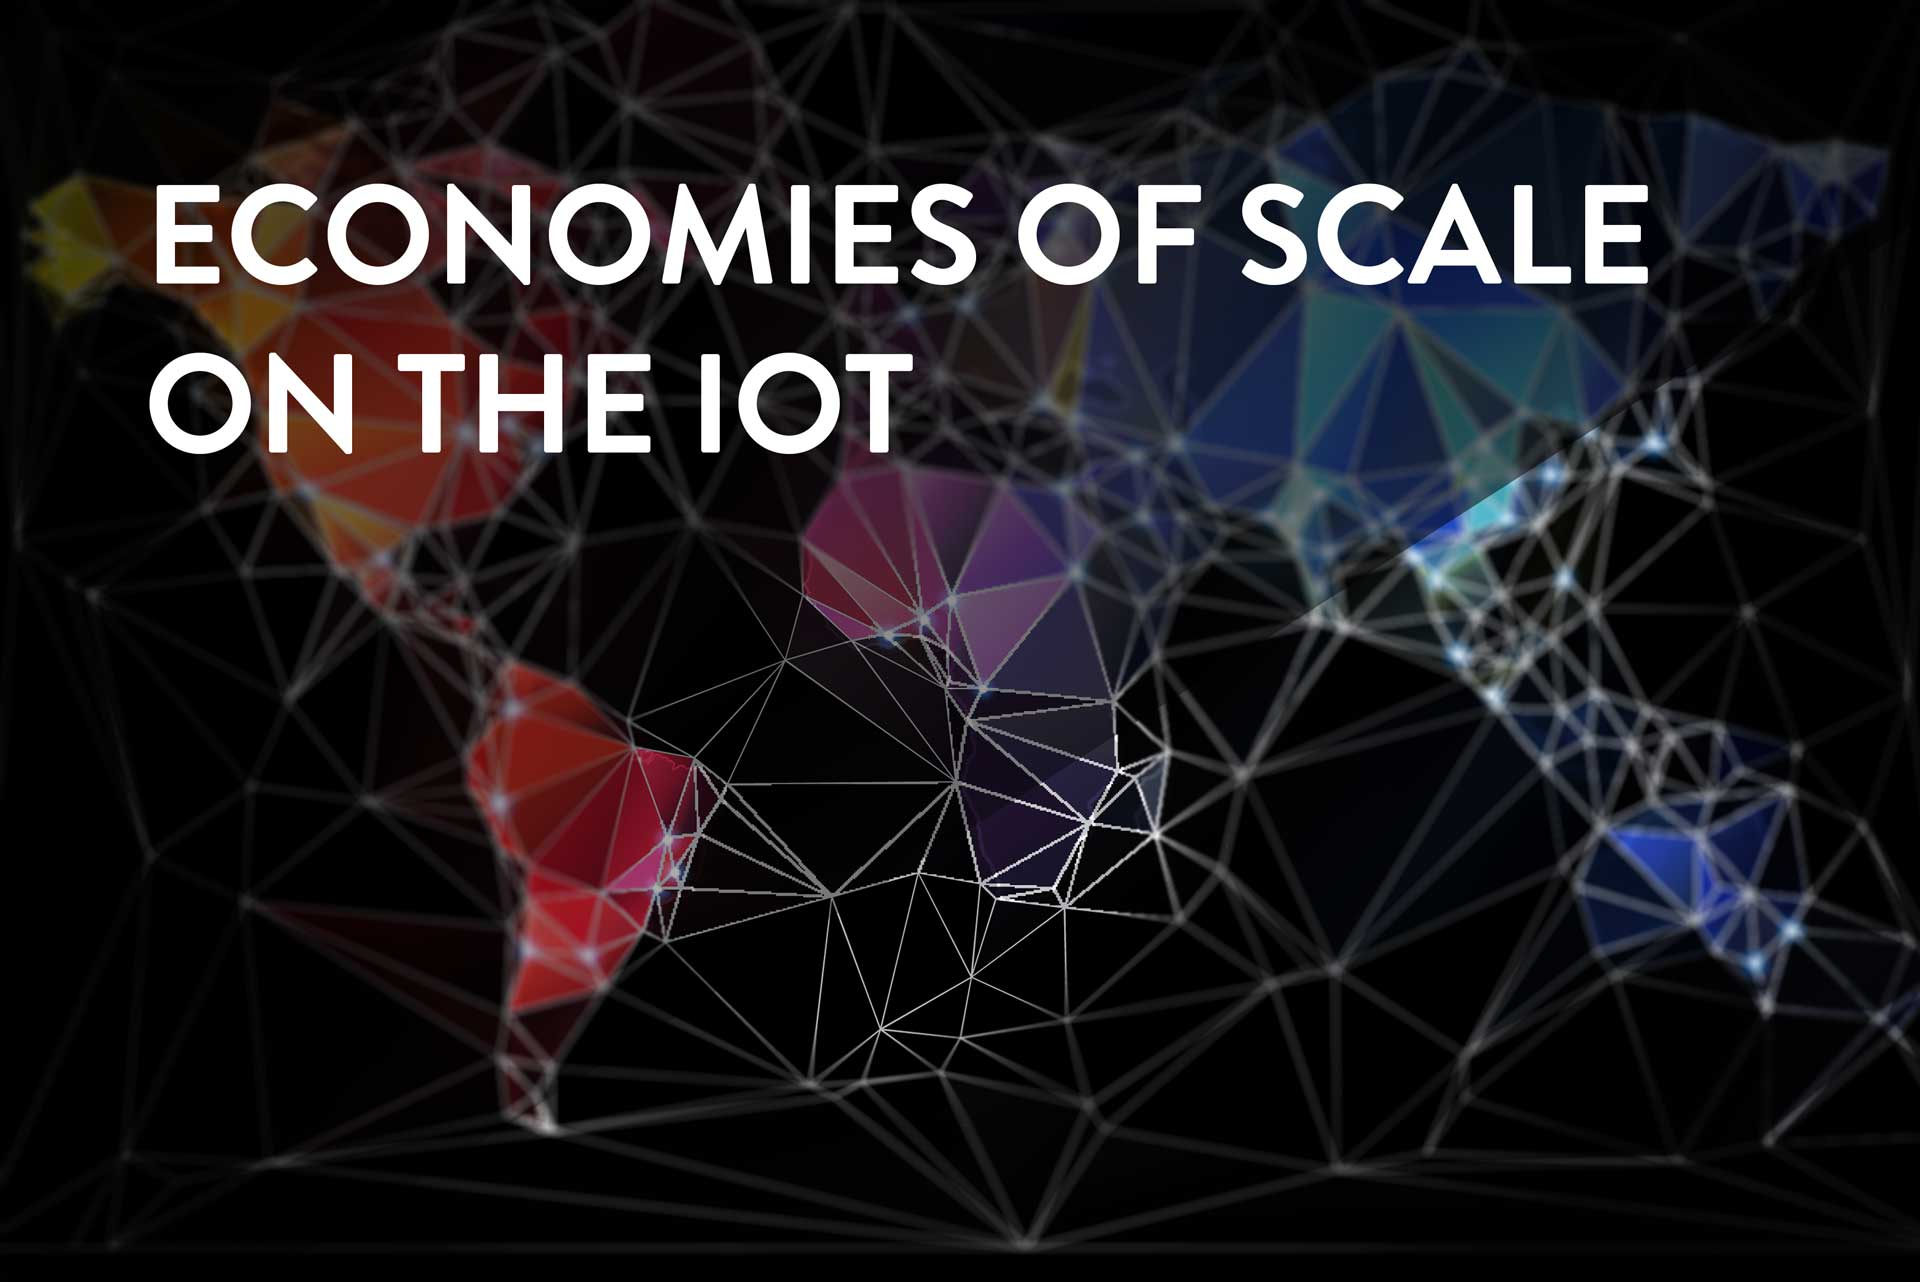 Economy of scale iot